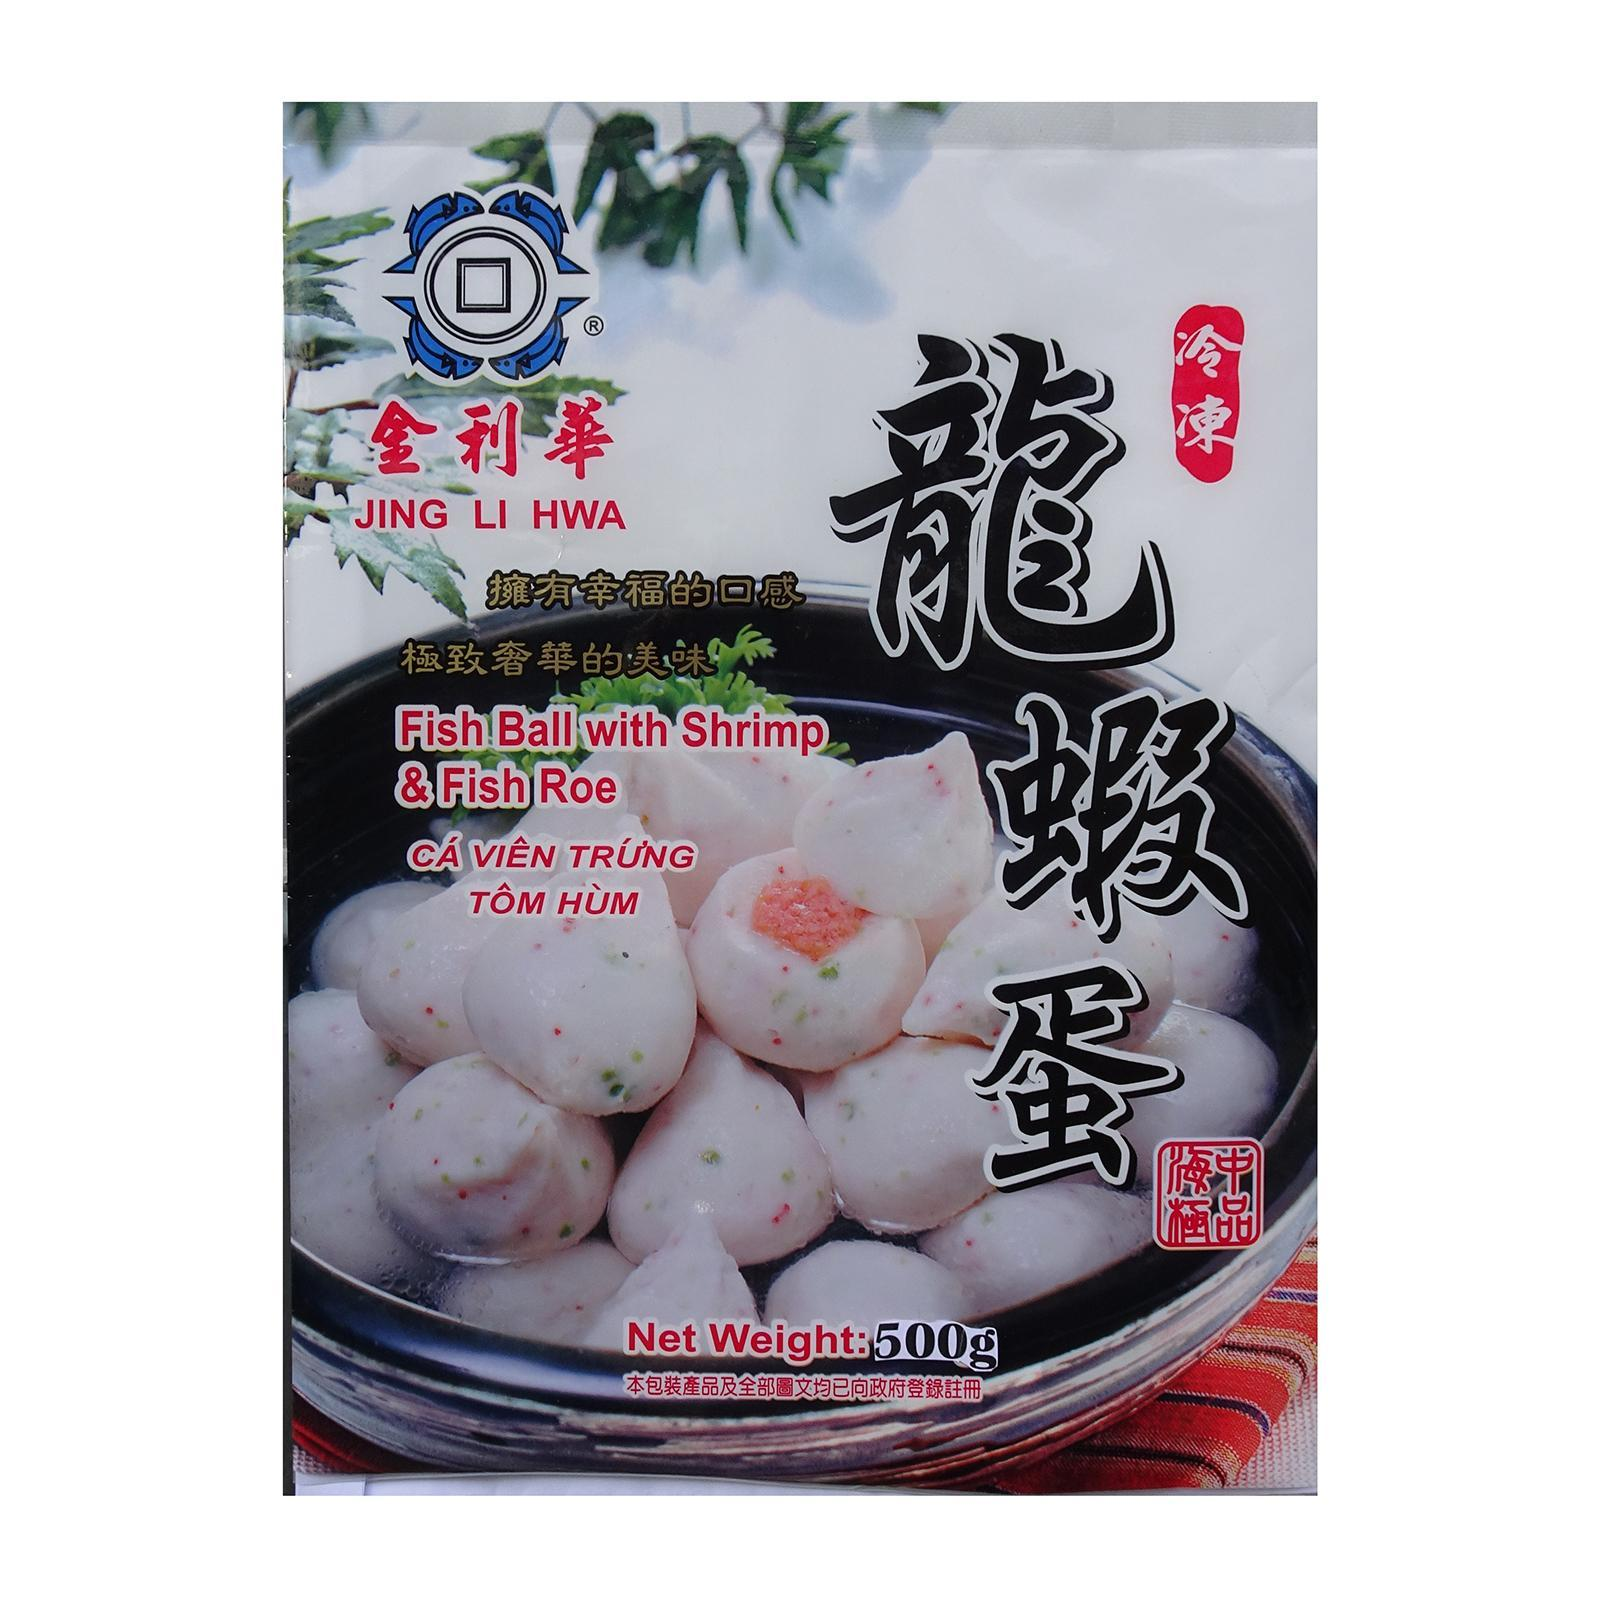 Jing Li Hwa Fish Ball With Shrimp And Fish Roe - Frozen By Redmart.